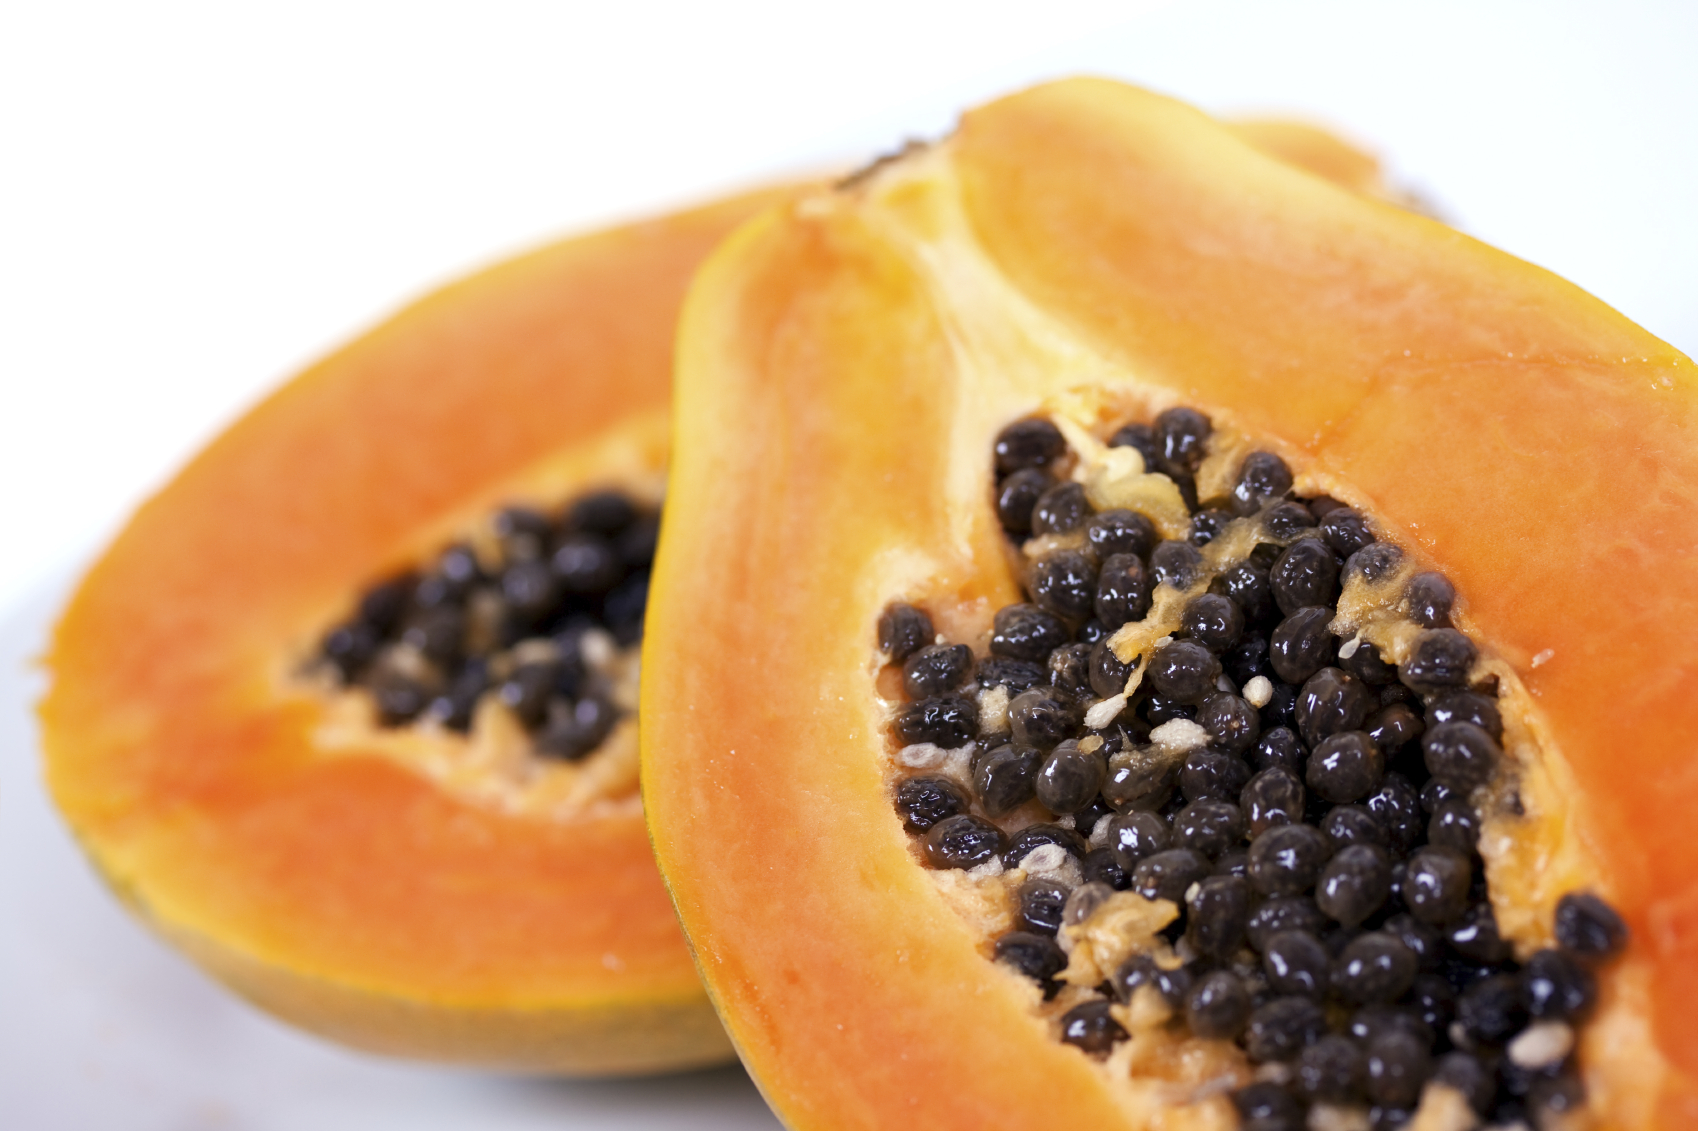 It might not be the most popular fruit in the produce aisle… But papayas come with major health benefits. Here are five reasons to start eating more papaya.